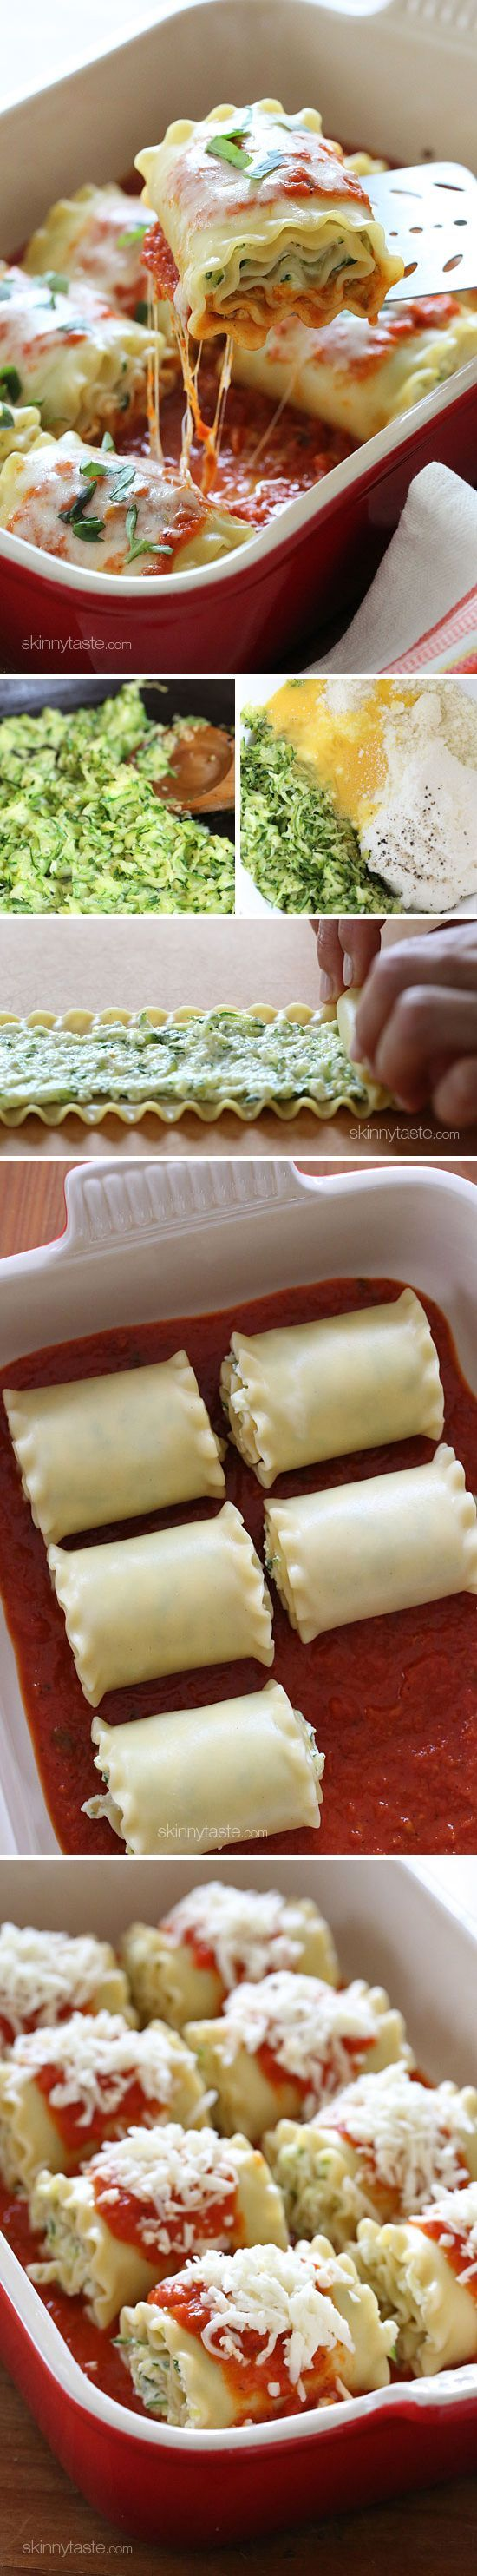 Easy, kid-friendly, freezer-friendly lasagna rolls stuffed with cheese and zucchini! | Foodqik: